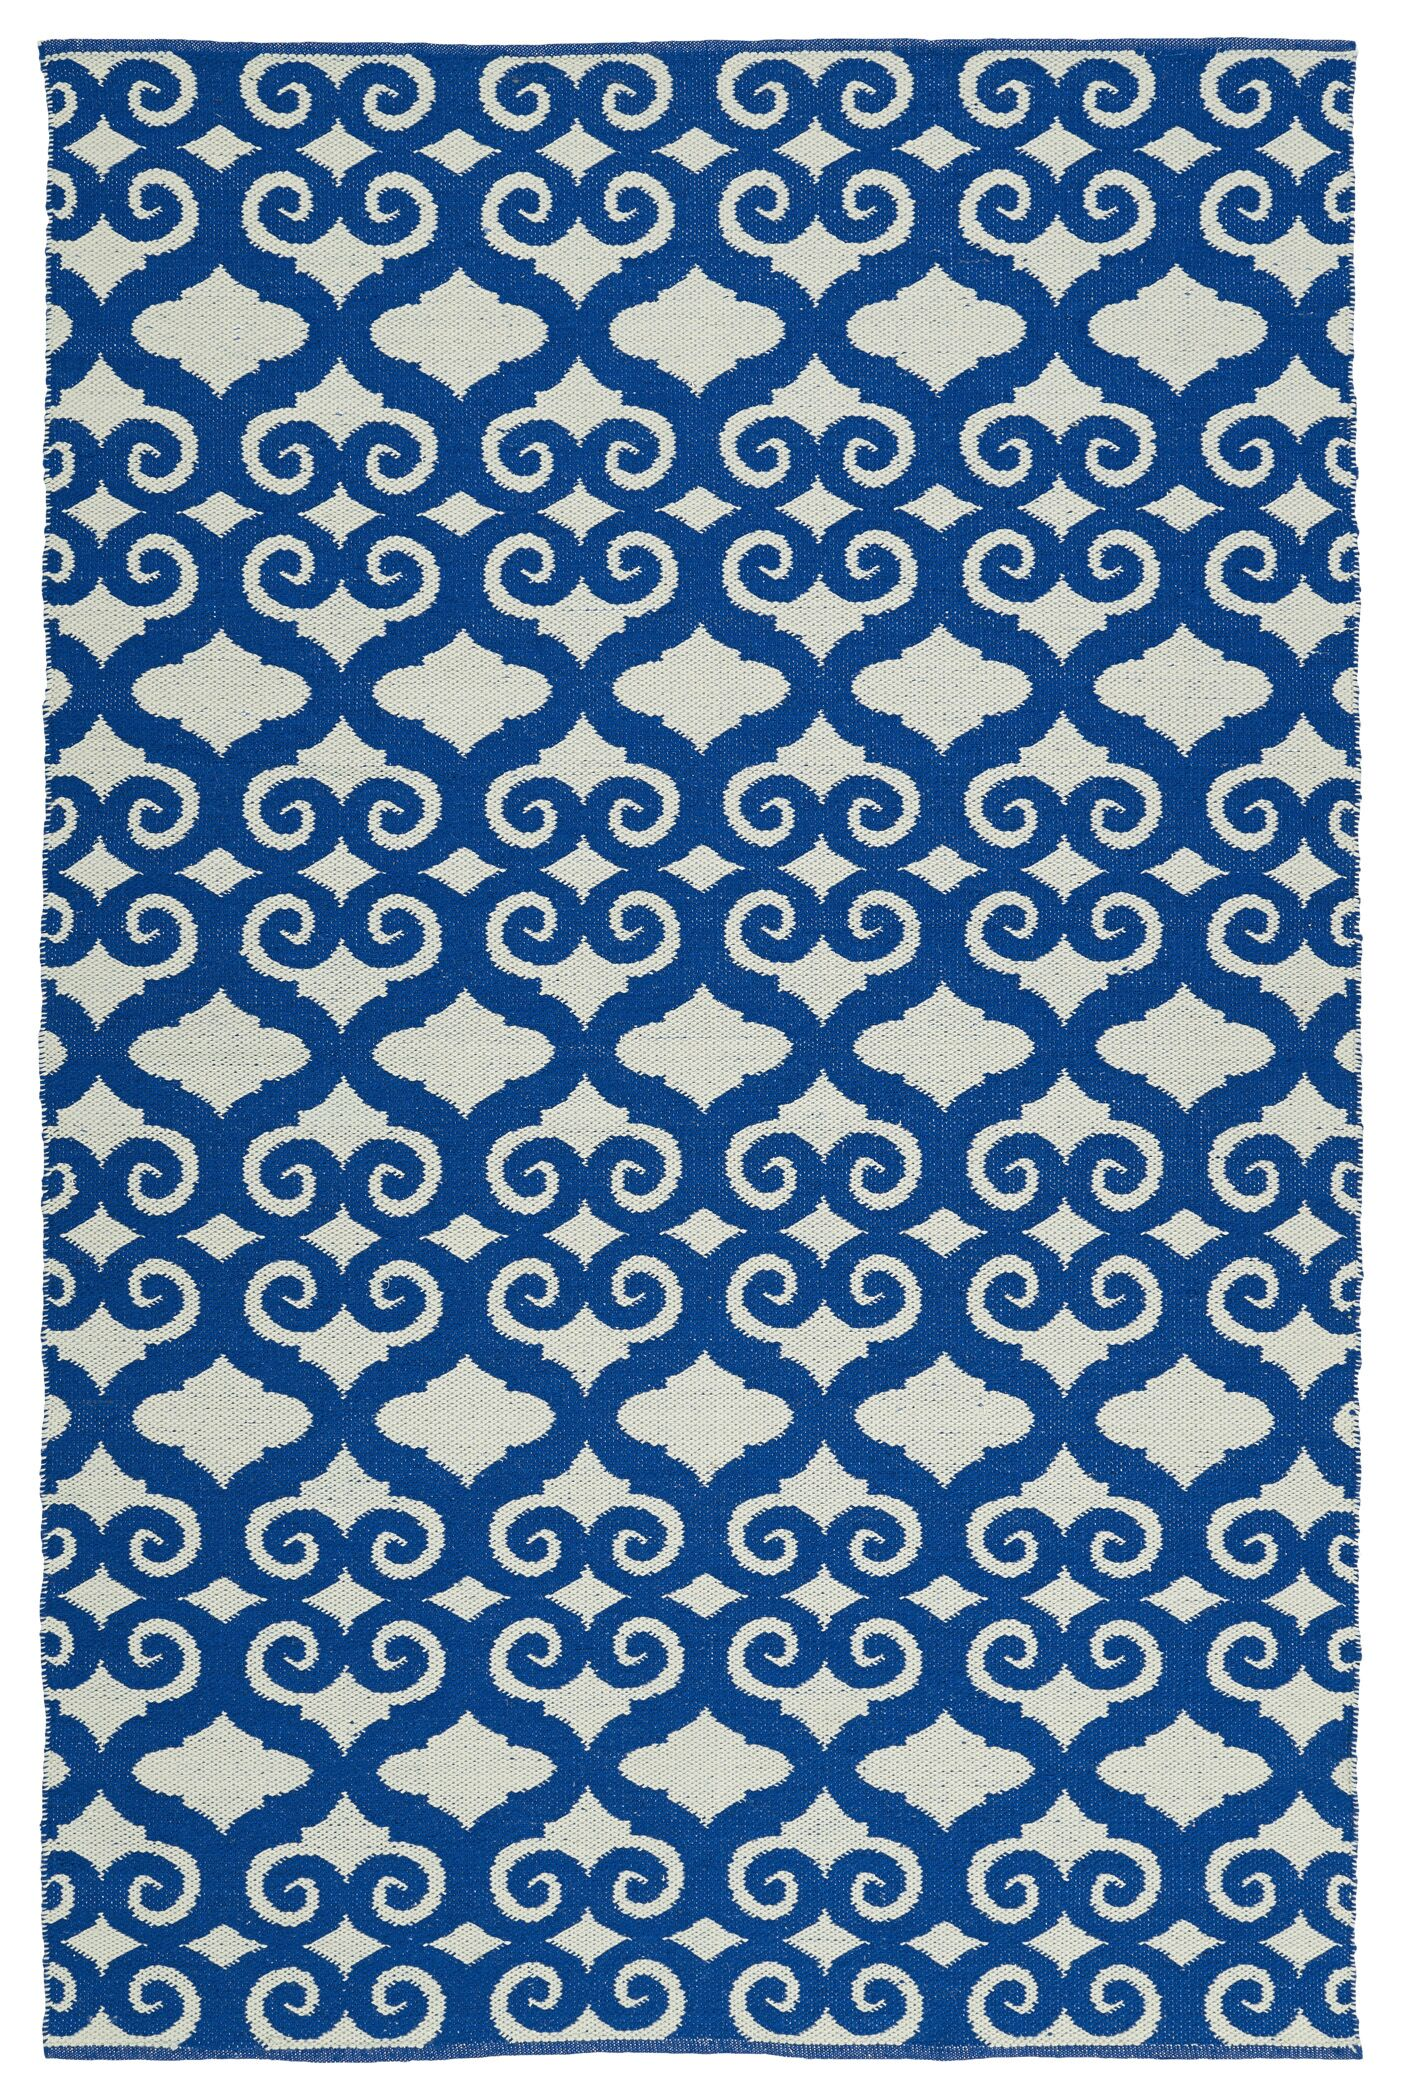 Covington Navy/White Indoor/Outdoor Area Rug Rug Size: Rectangle 8' x 10'